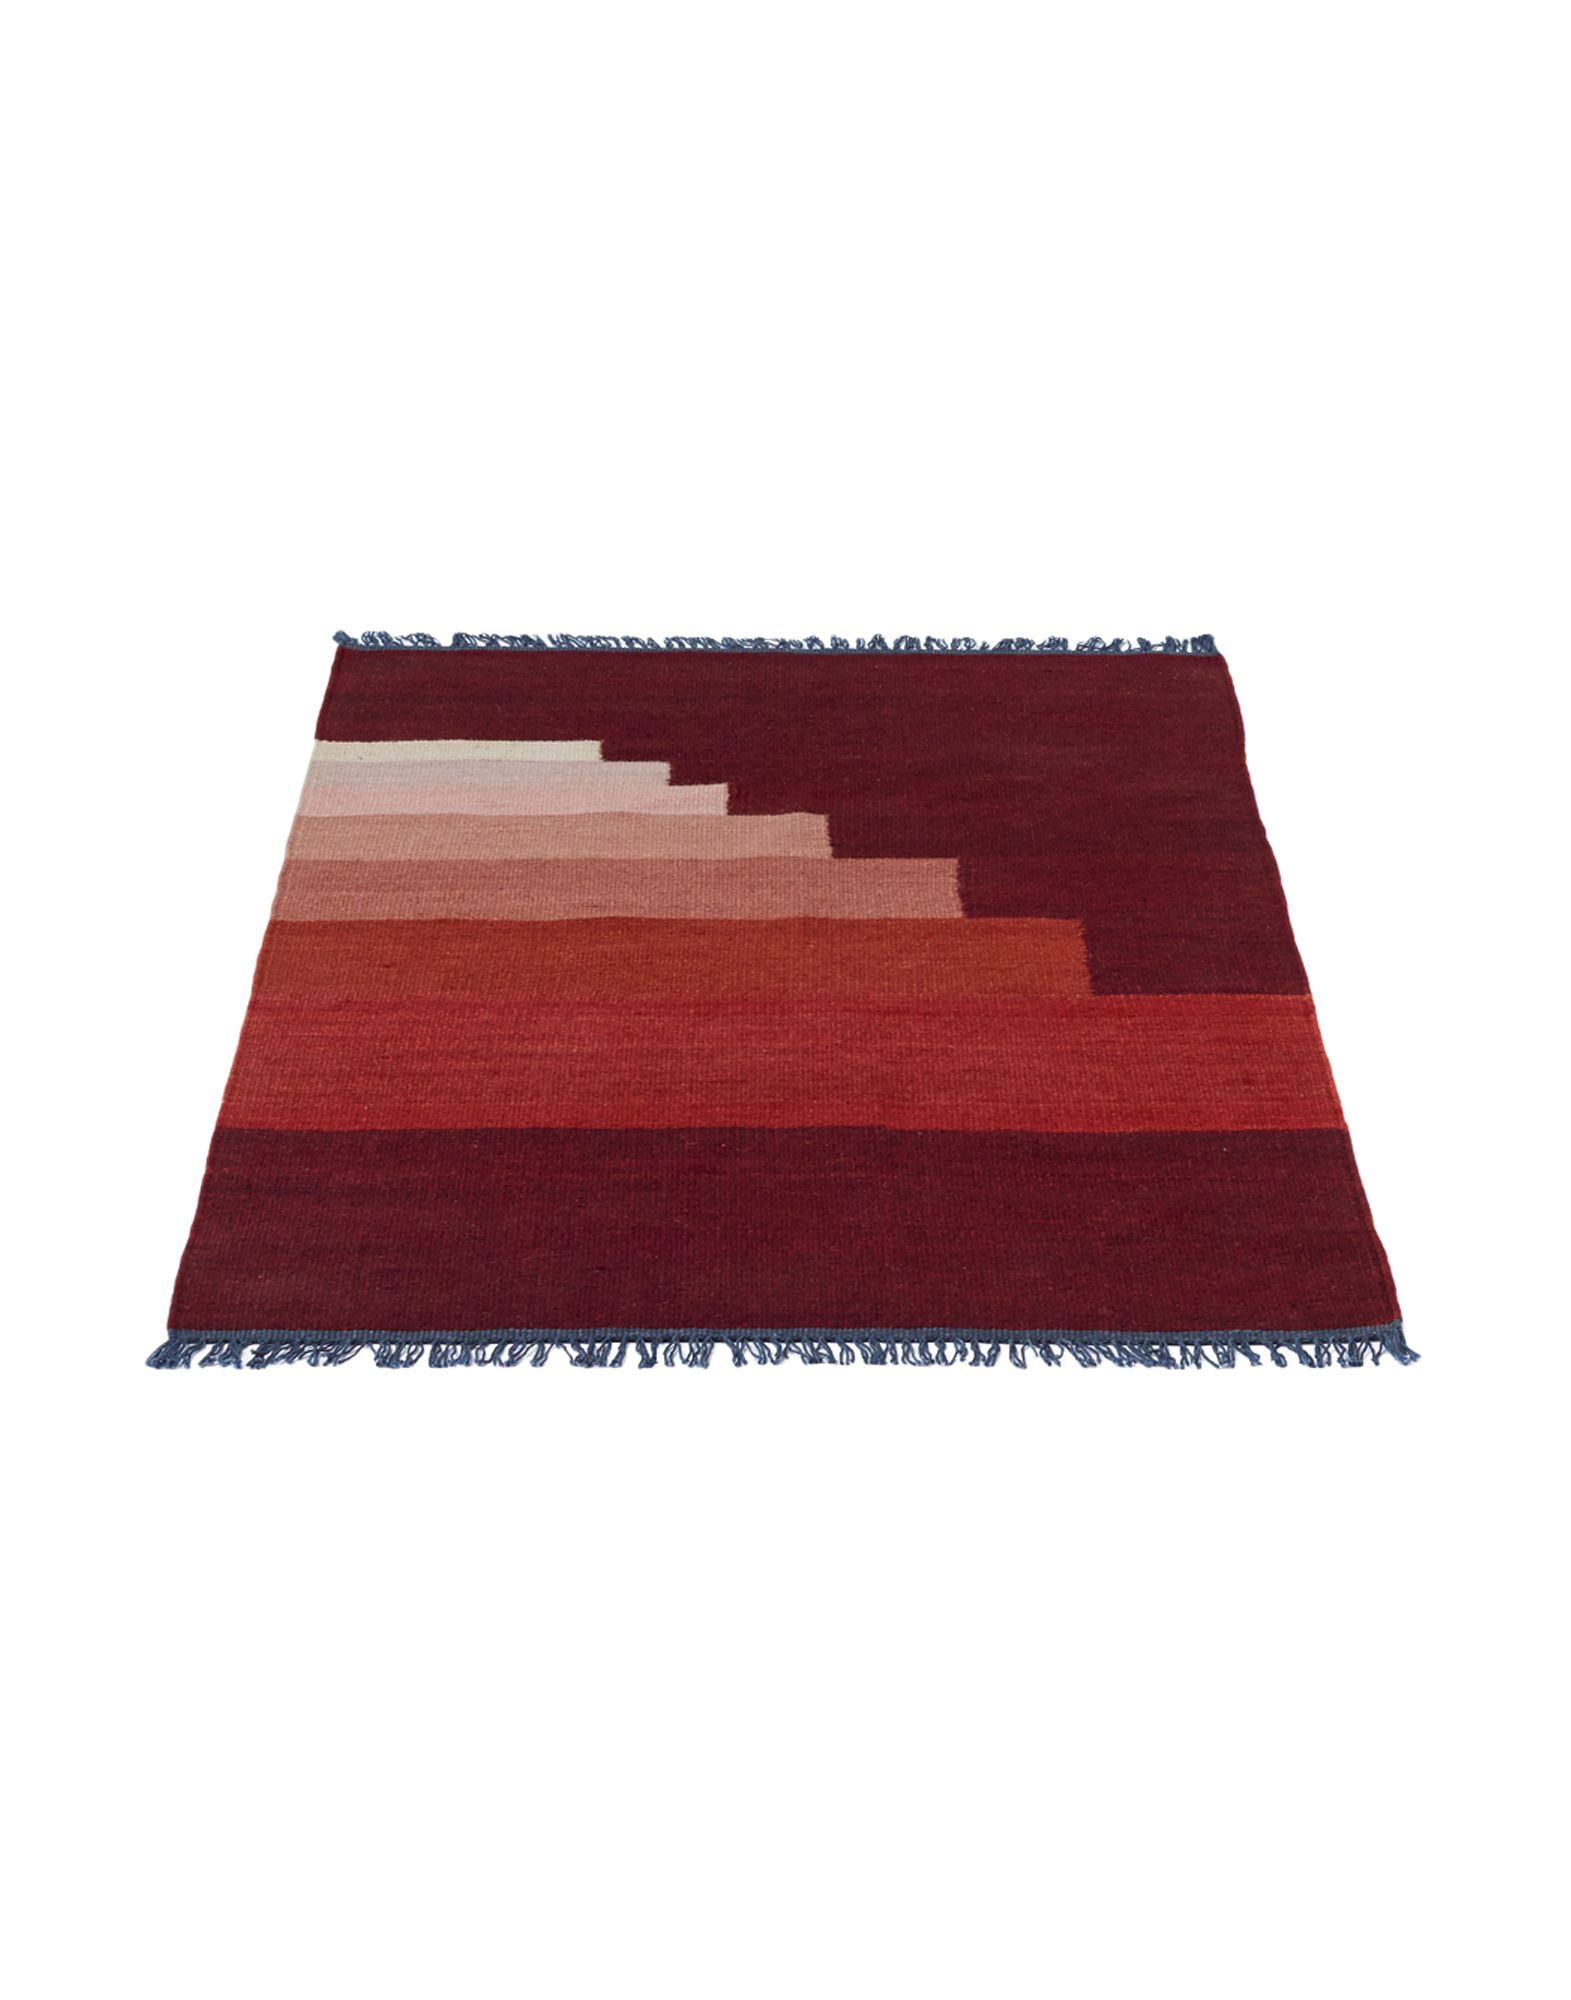 '&tradition Rugs